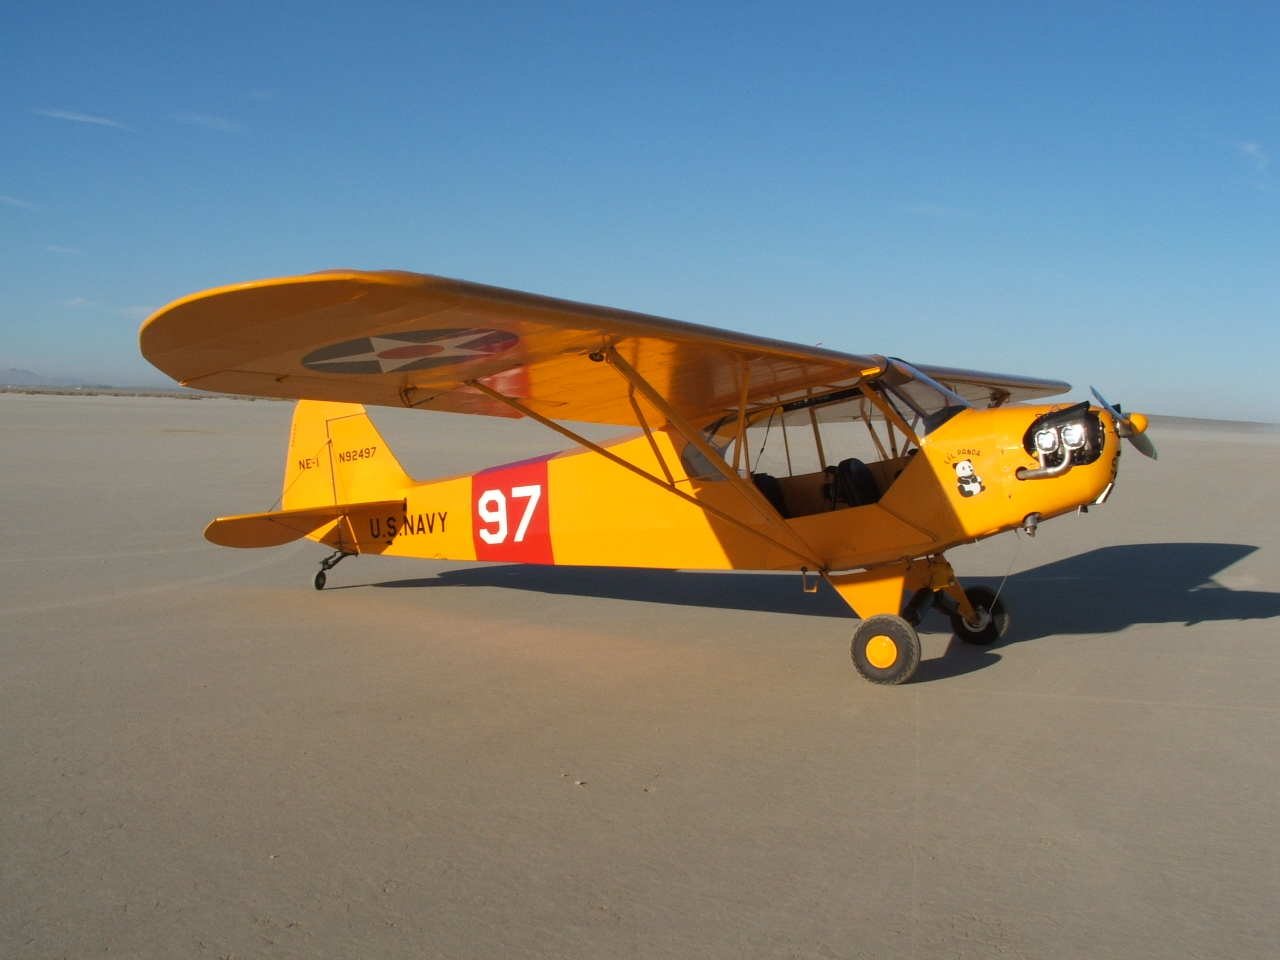 NC92497-7-Cub at El Mirage #1